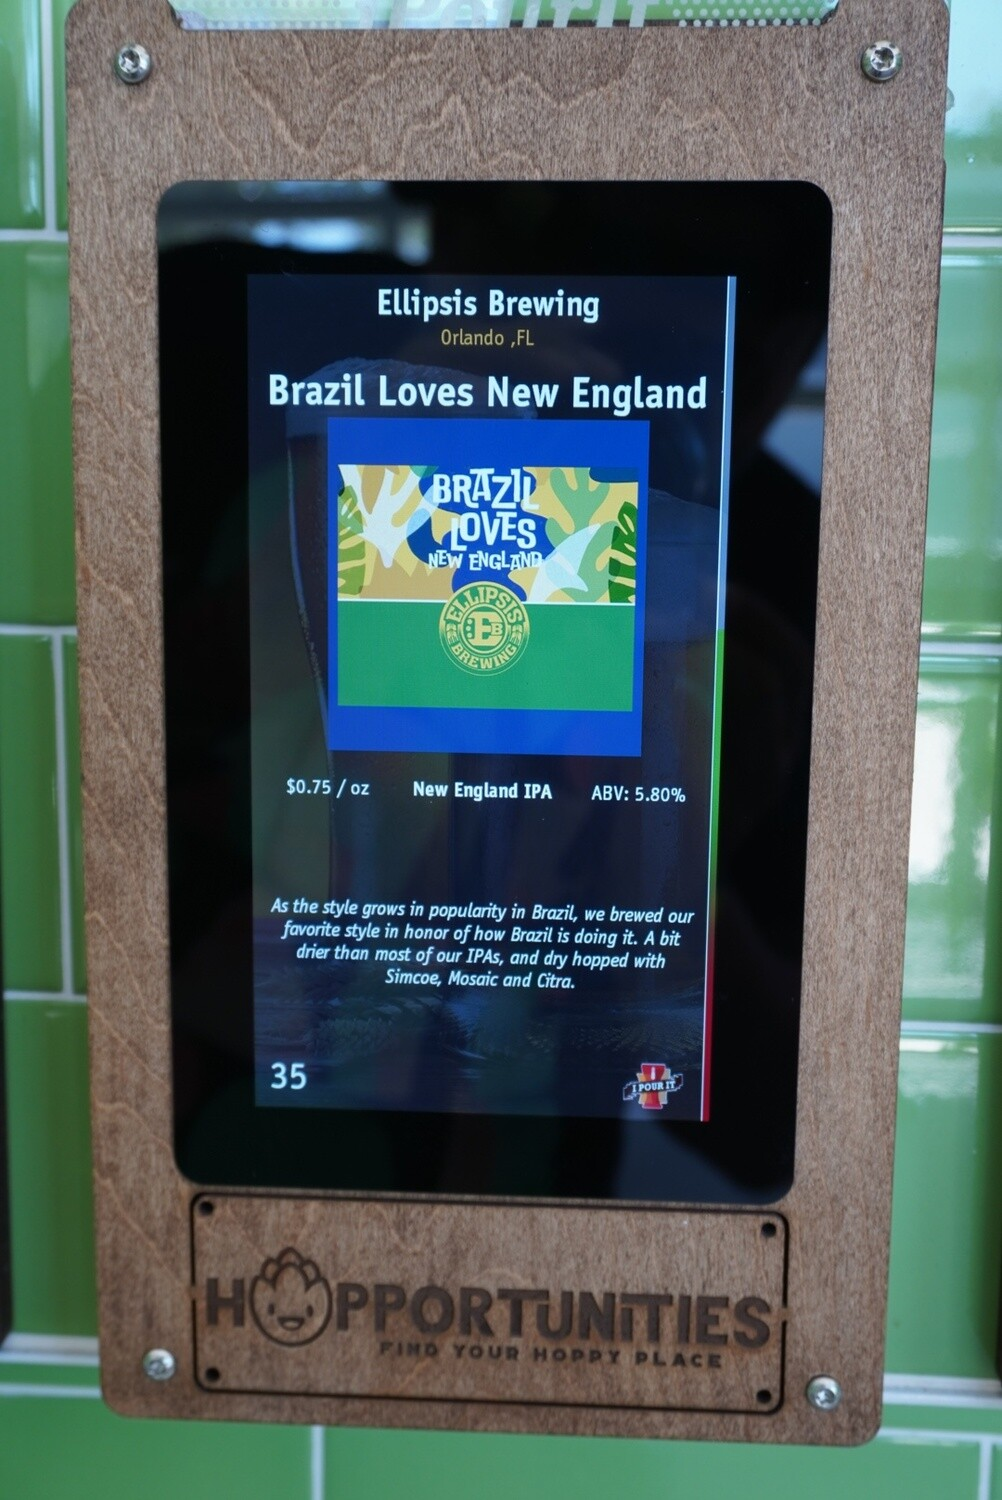 Ellipsis Brewing - Brazil Loves New England - New England IPA